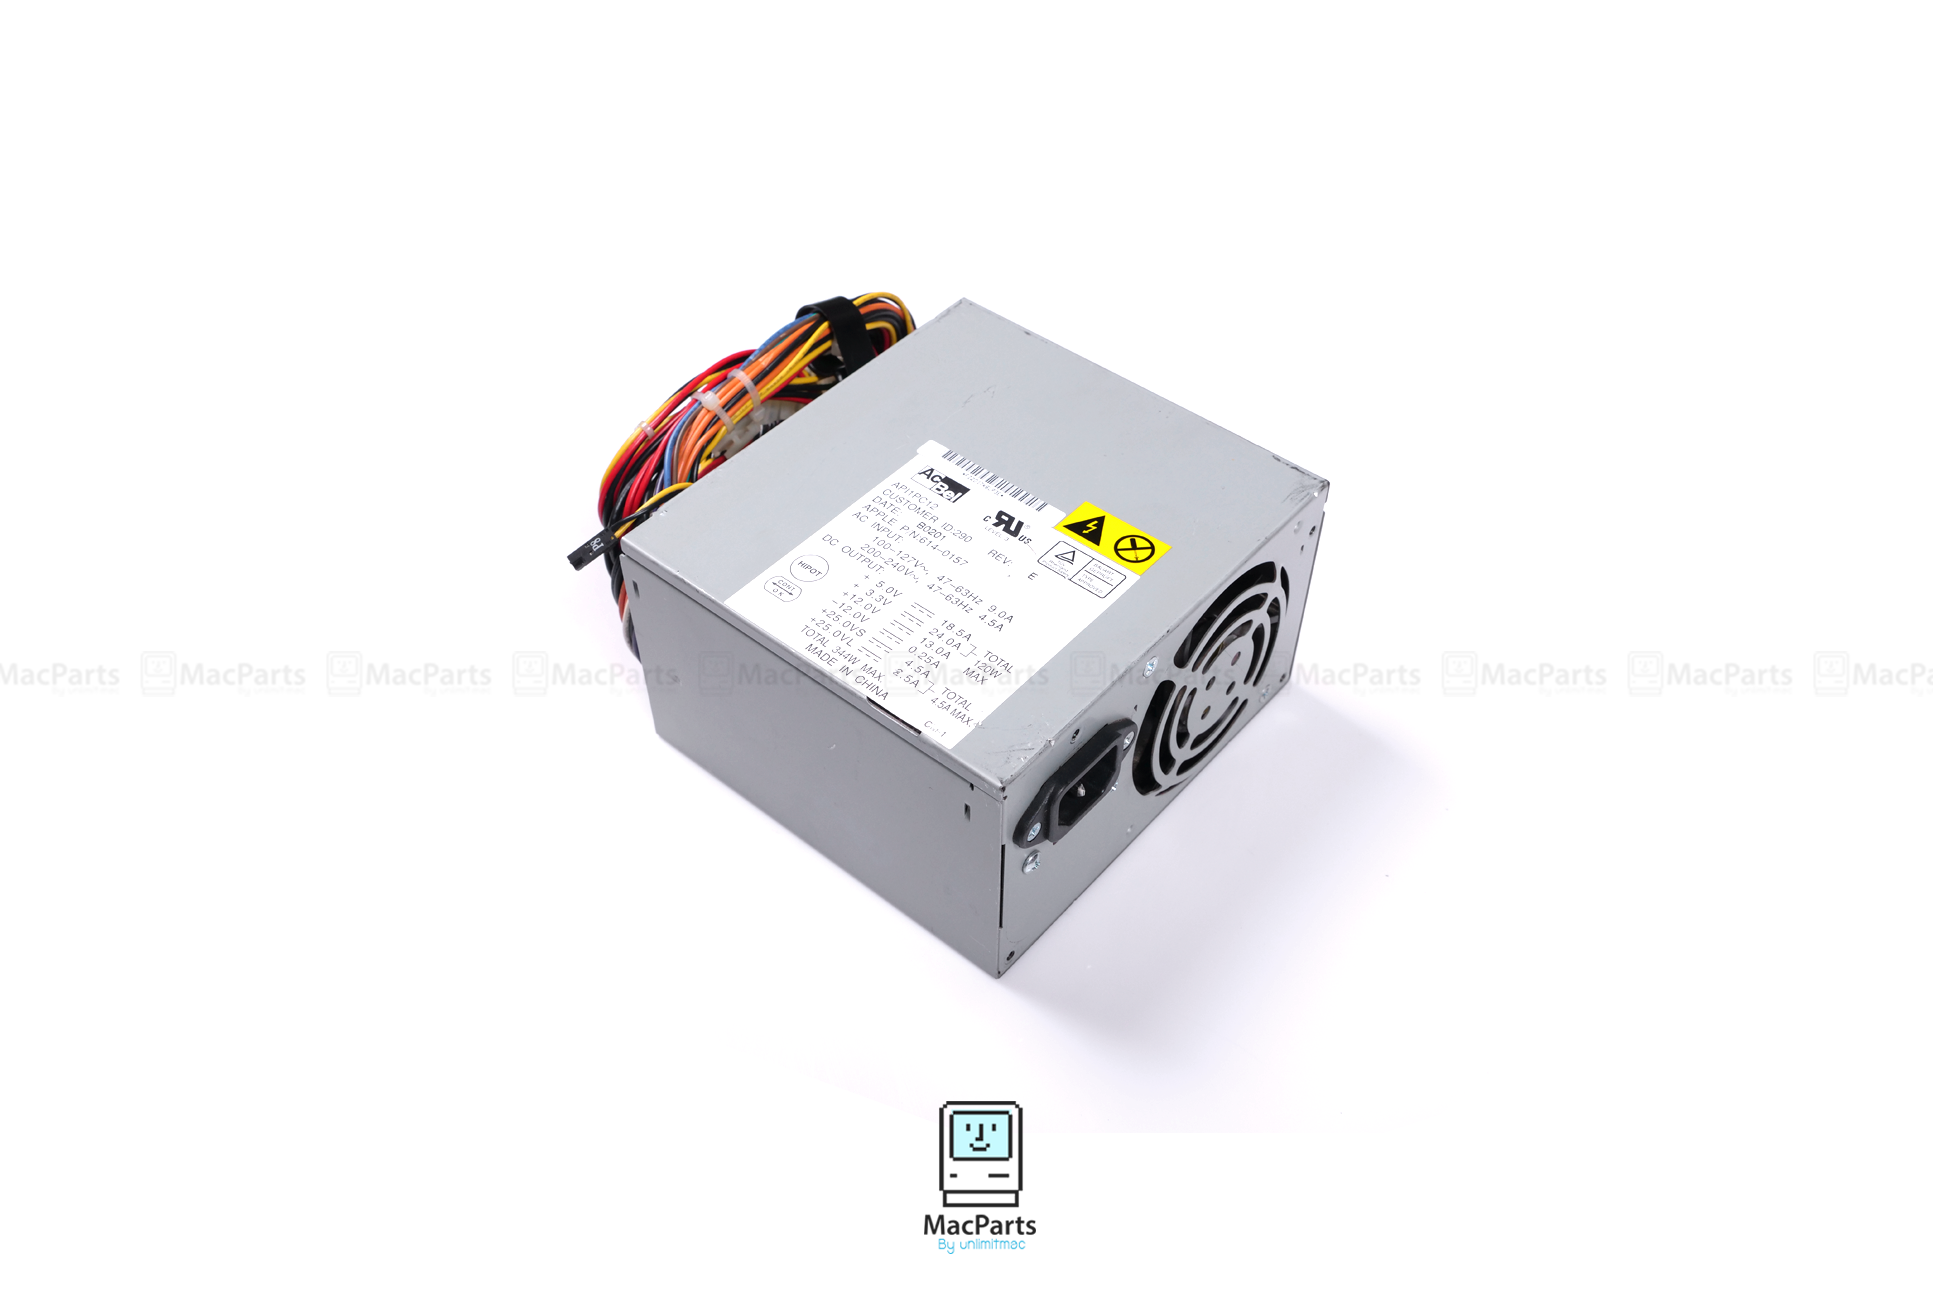 661-2514 Power Supply PowerMac G4 QuickSilver 340Watt